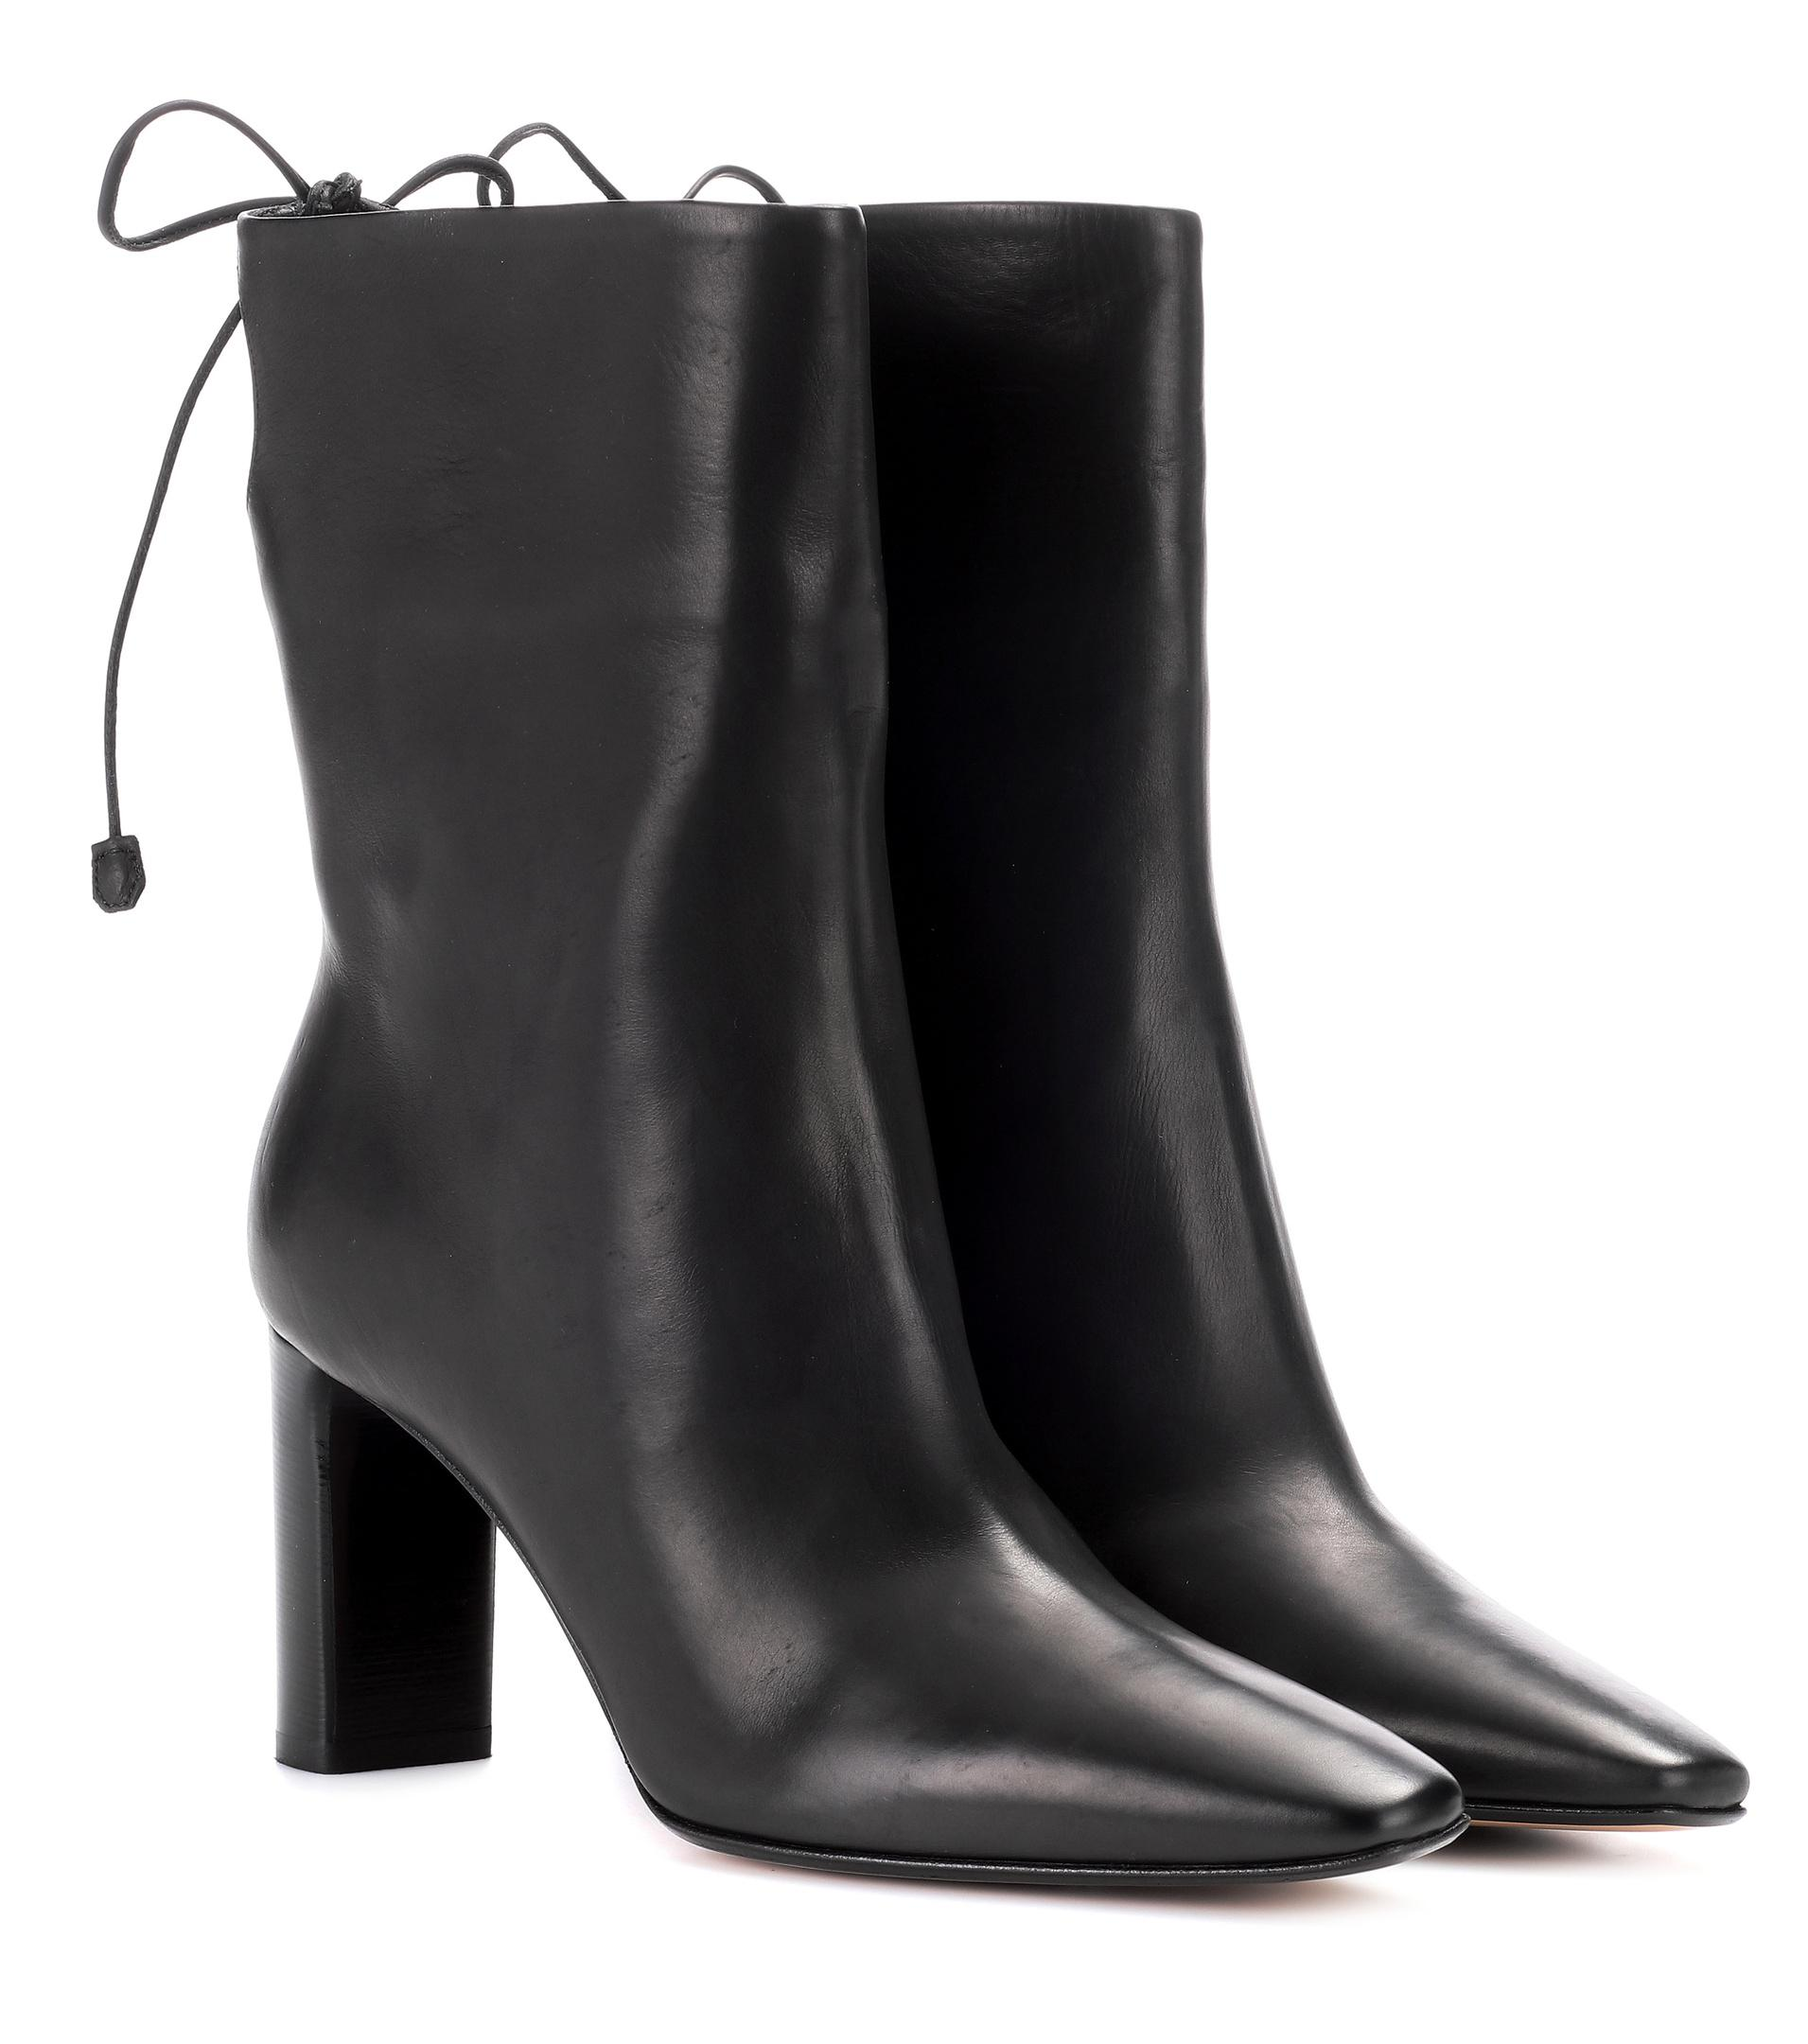 The Row Emil leather ankle boots Deals Cheap Online Outlet From China muCNQy0pz0